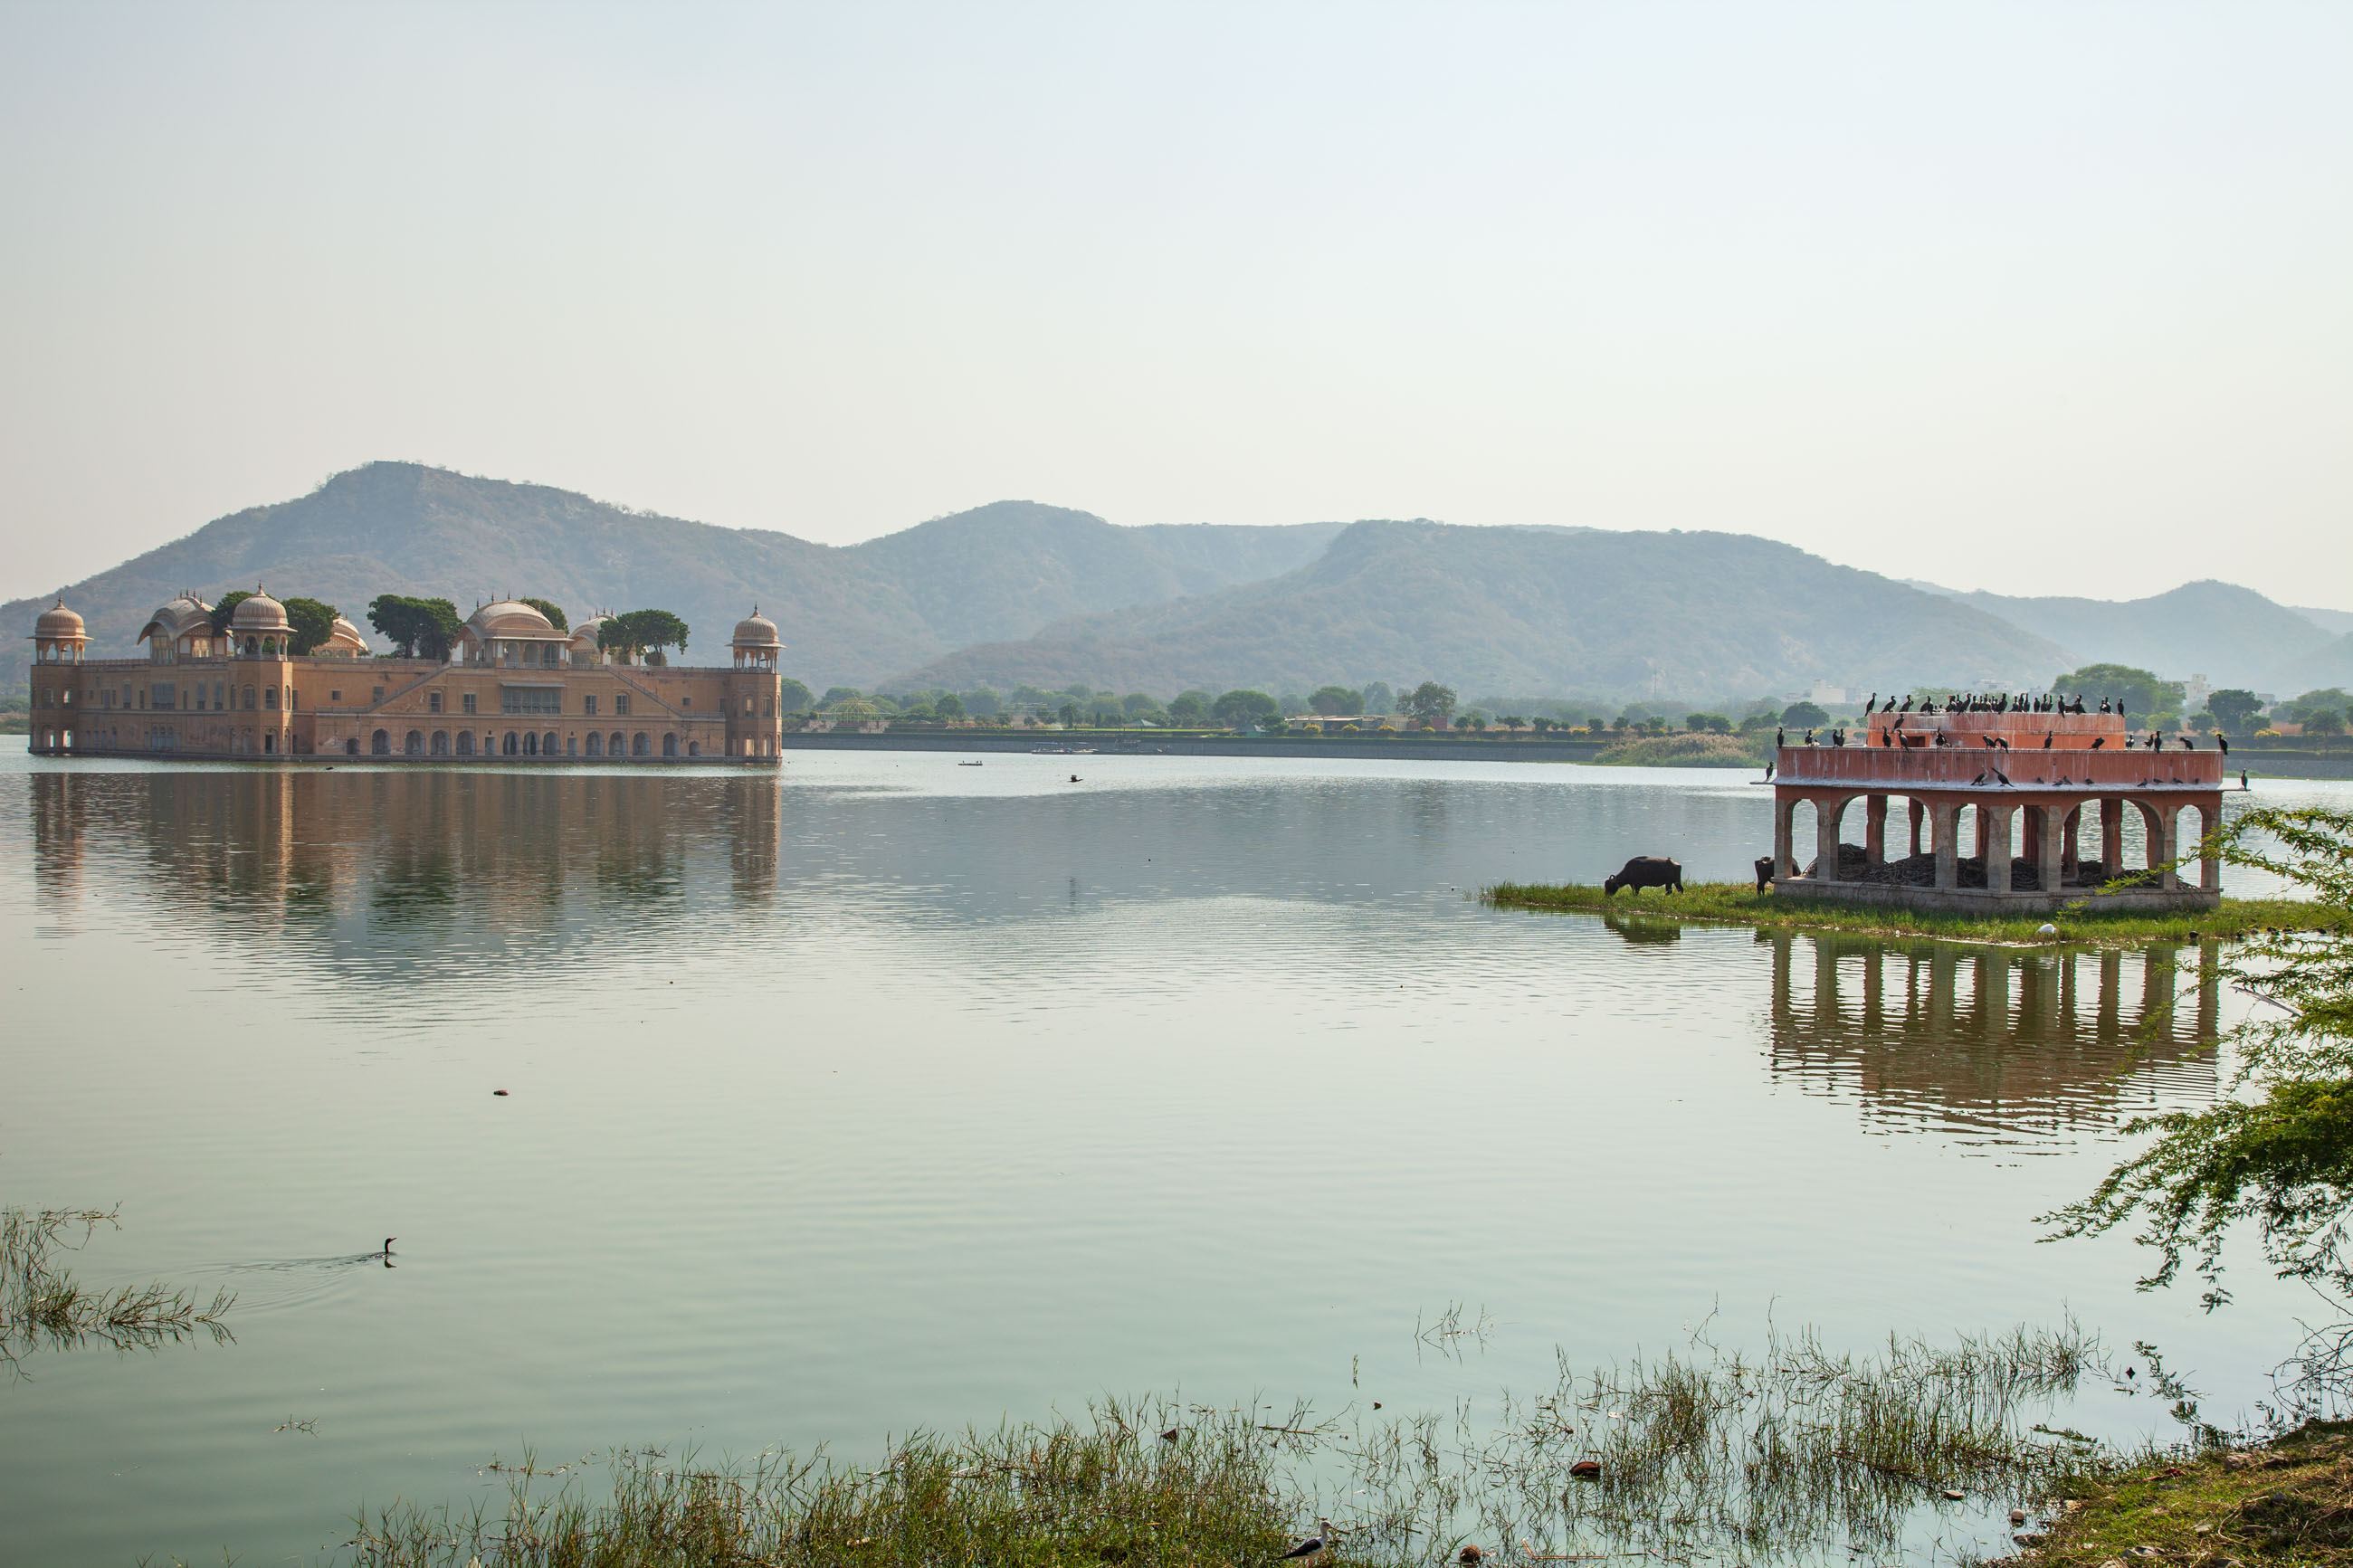 https://bubo.sk/uploads/galleries/4917/samuelklc_india_jaipur_jalmahal_img_0162.jpg